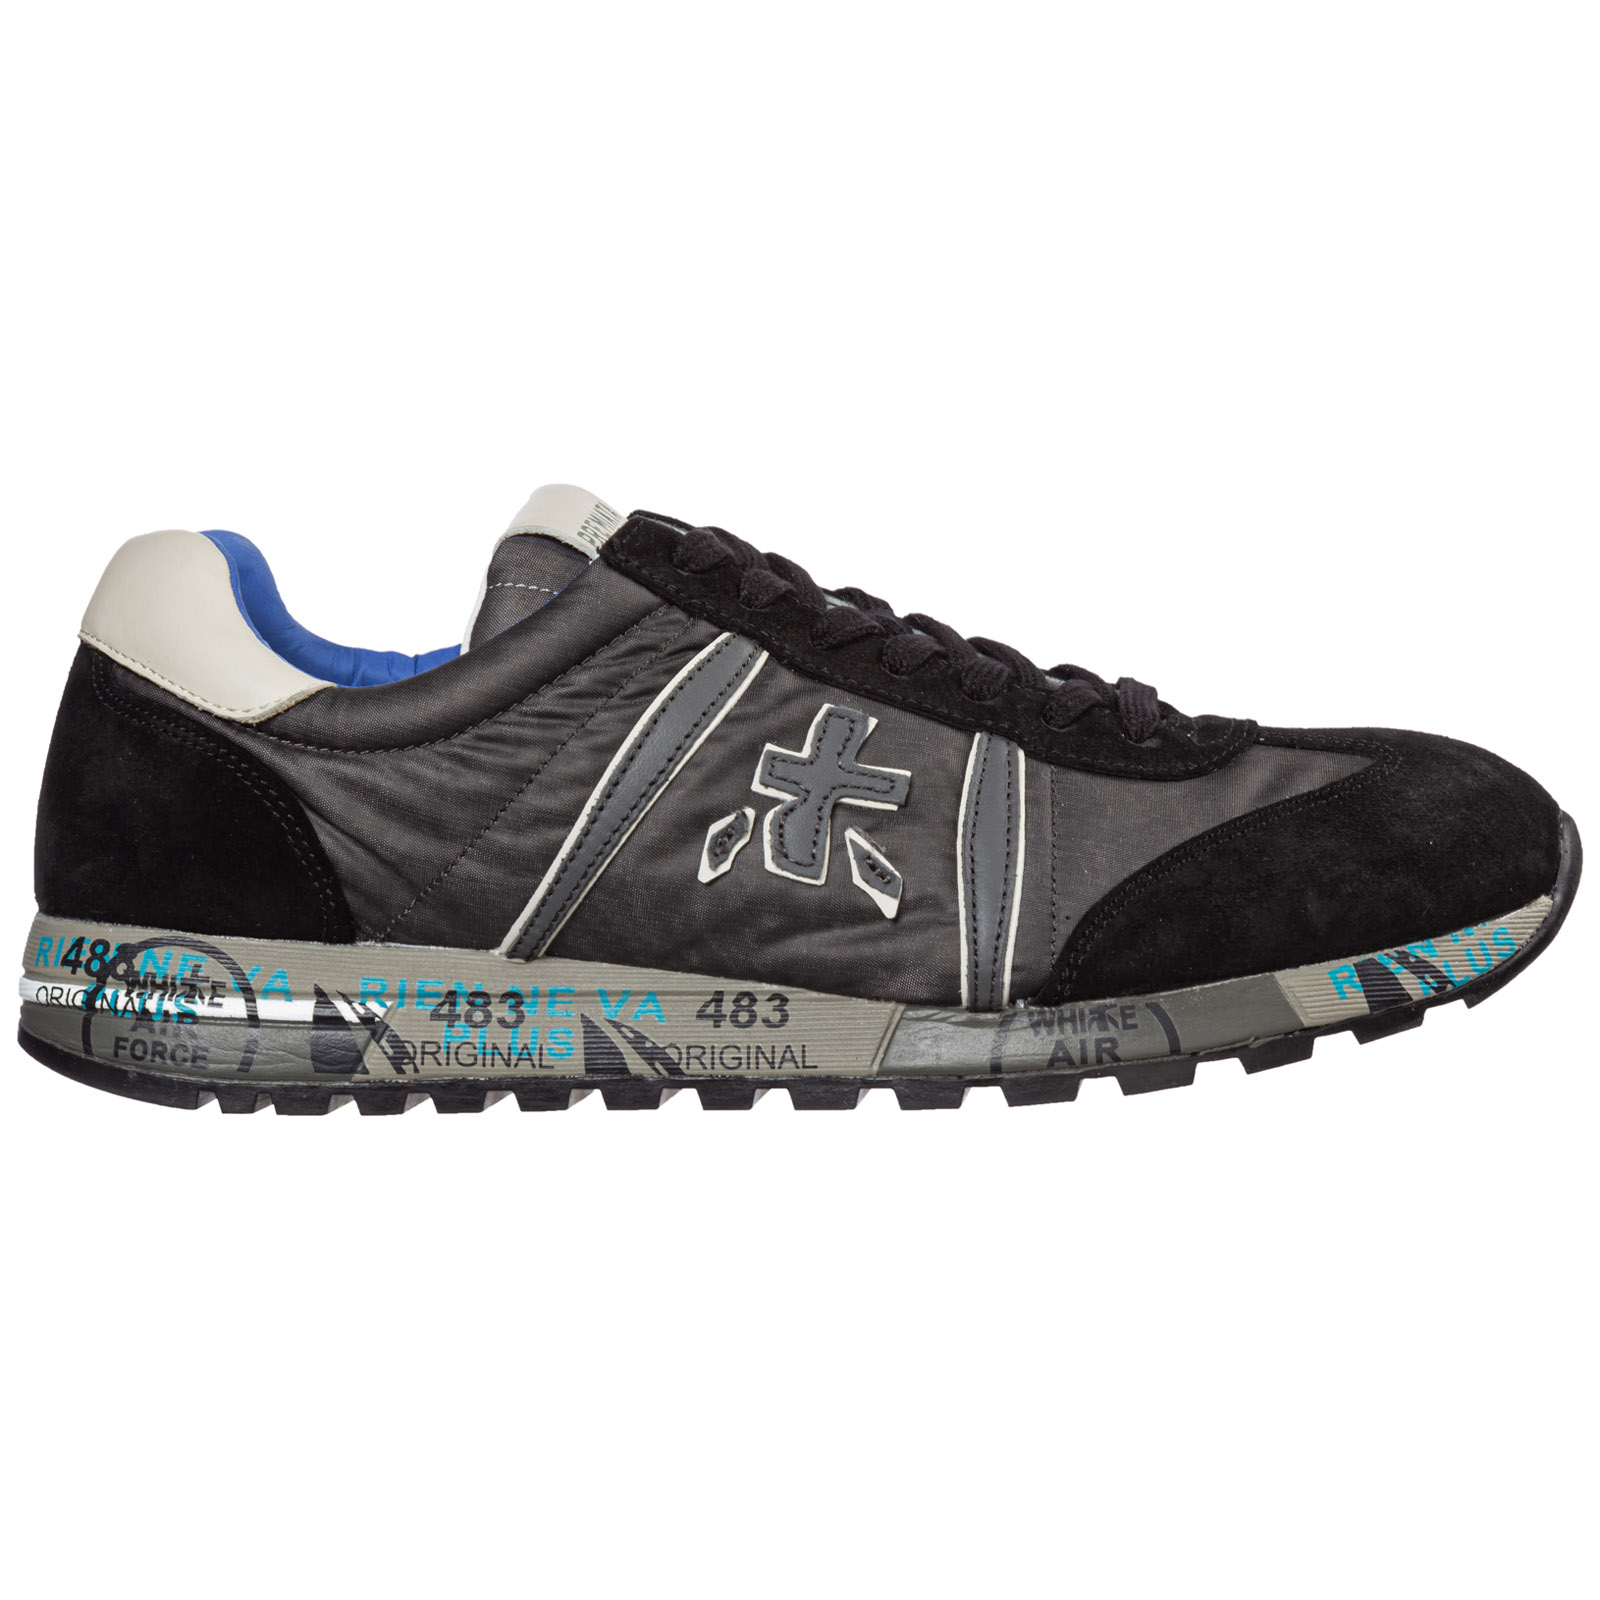 Premiata Sneakers MEN'S SHOES SUEDE TRAINERS SNEAKERS LUCY